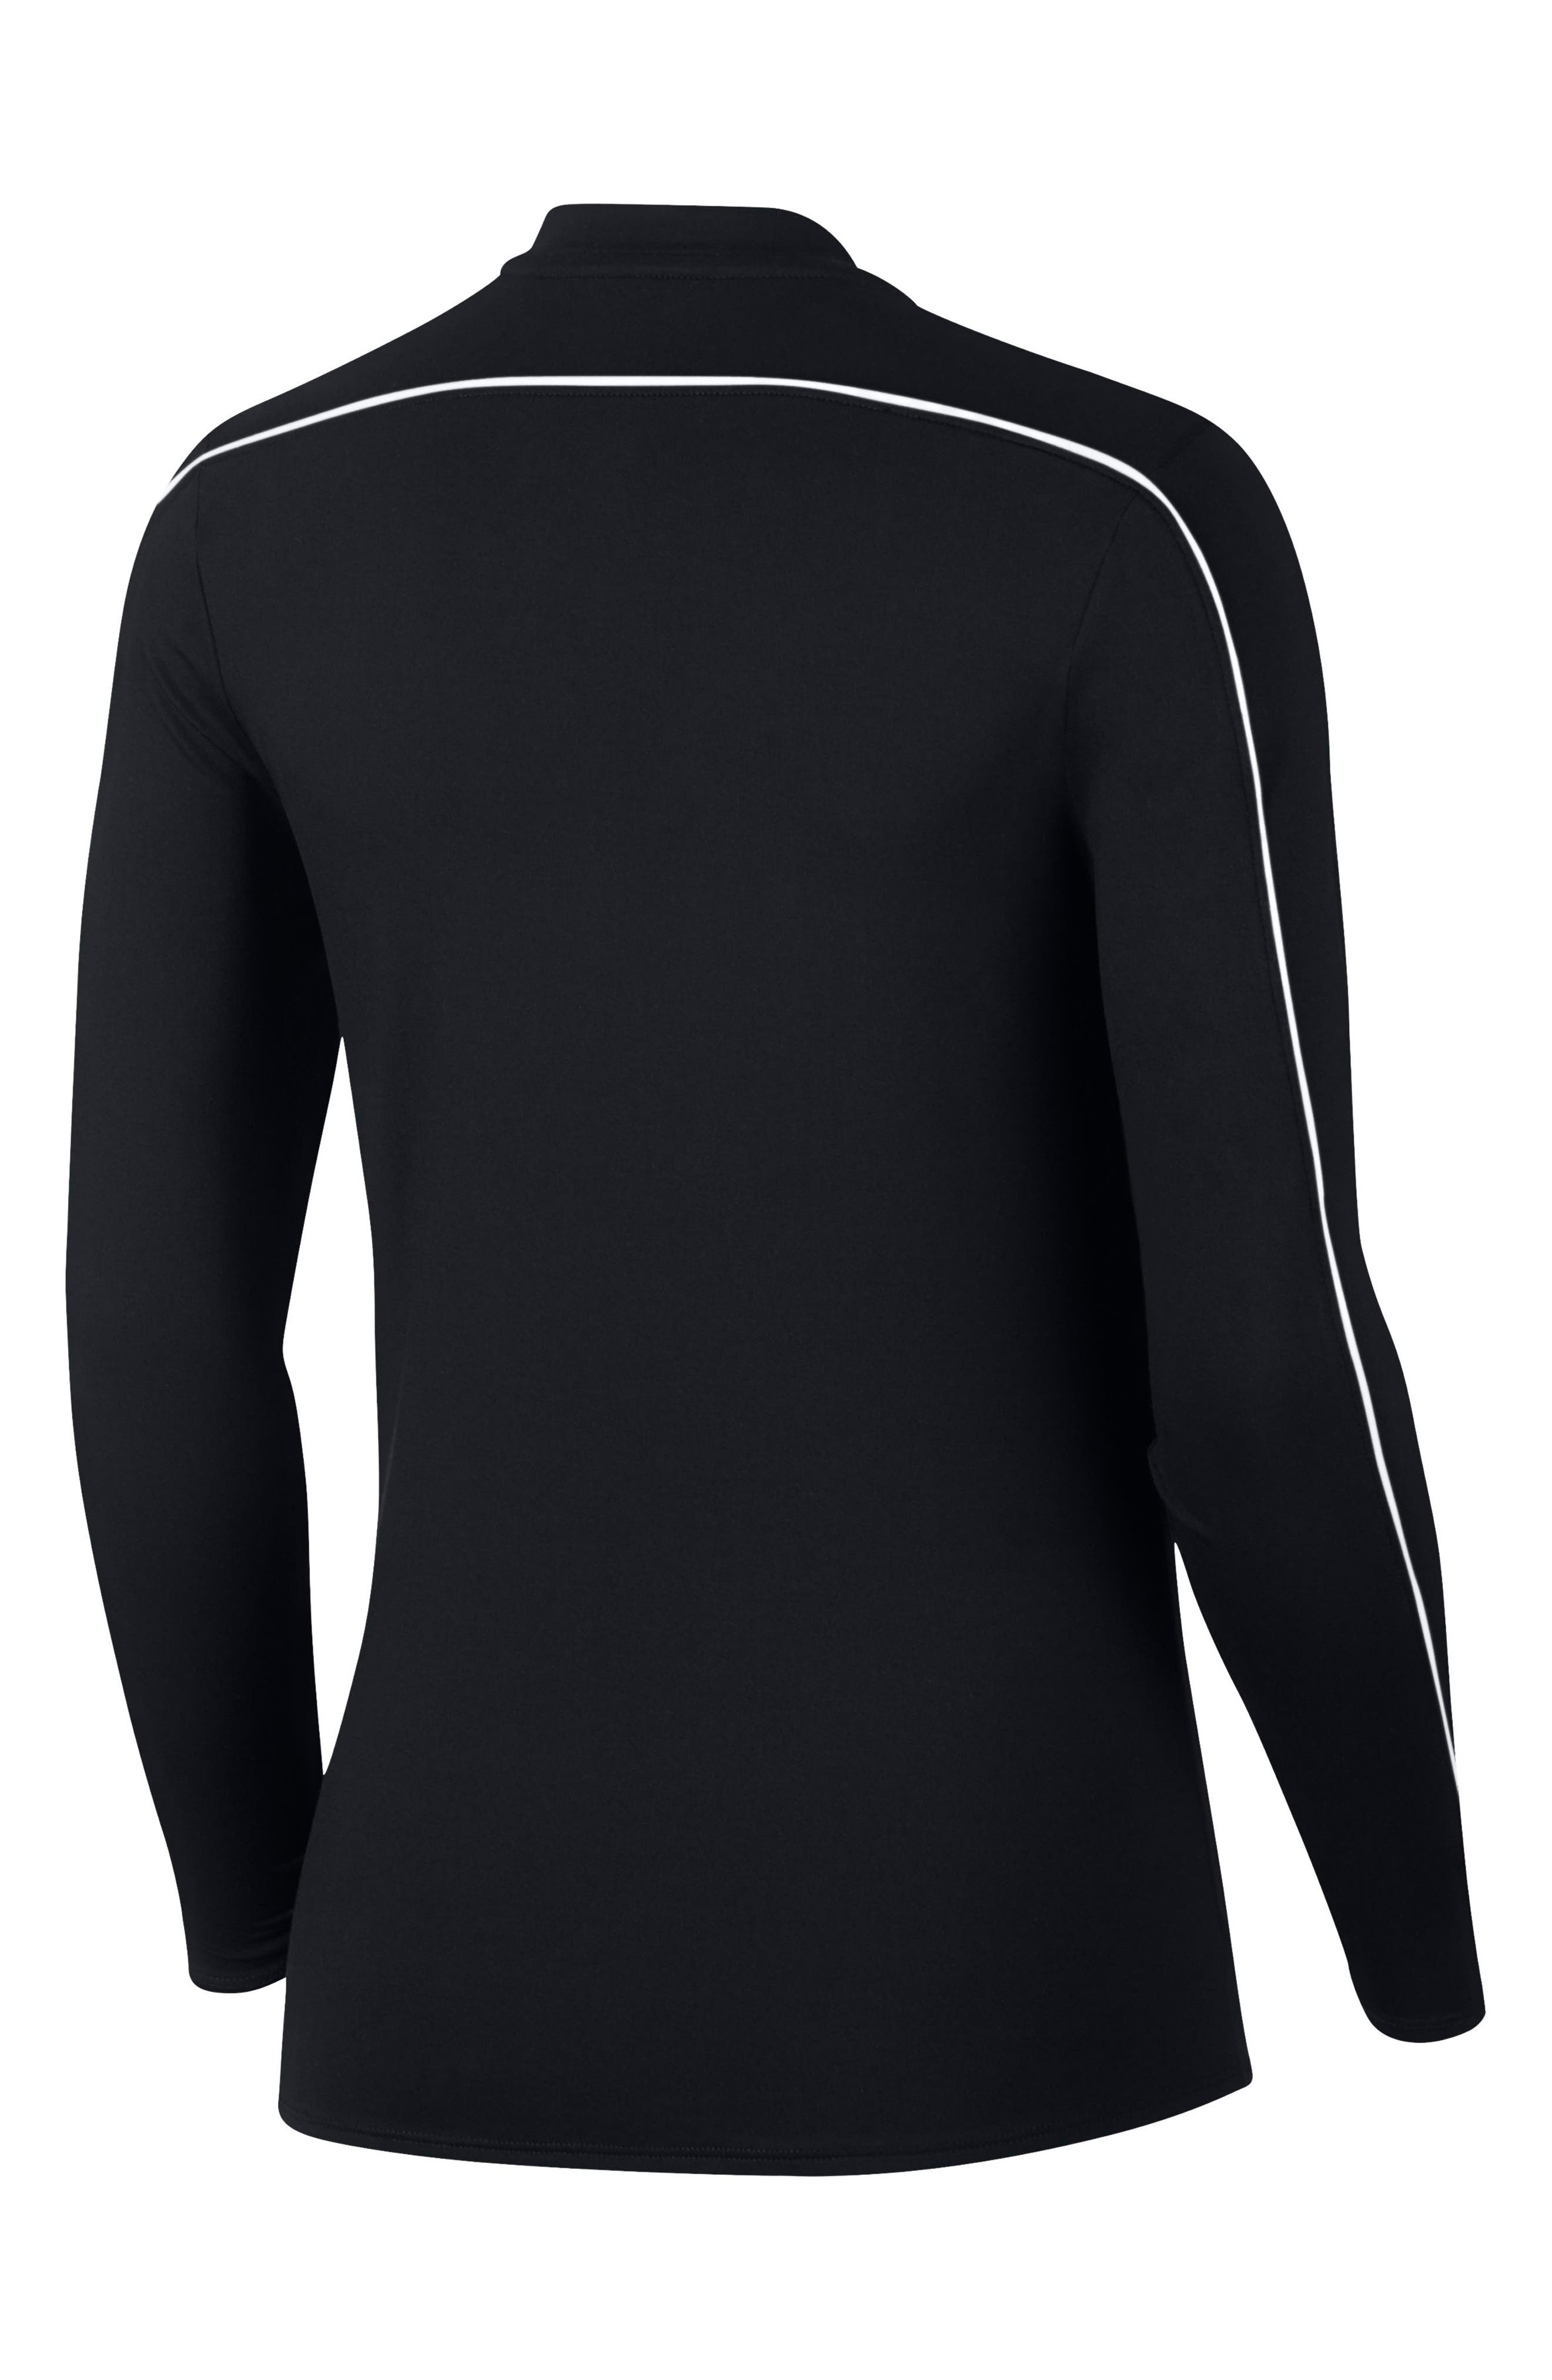 Court Dri-FIT Quarter Zip Top,                             Alternate thumbnail 8, color,                             BLACK/ WHITE/ WHITE/ BLACK